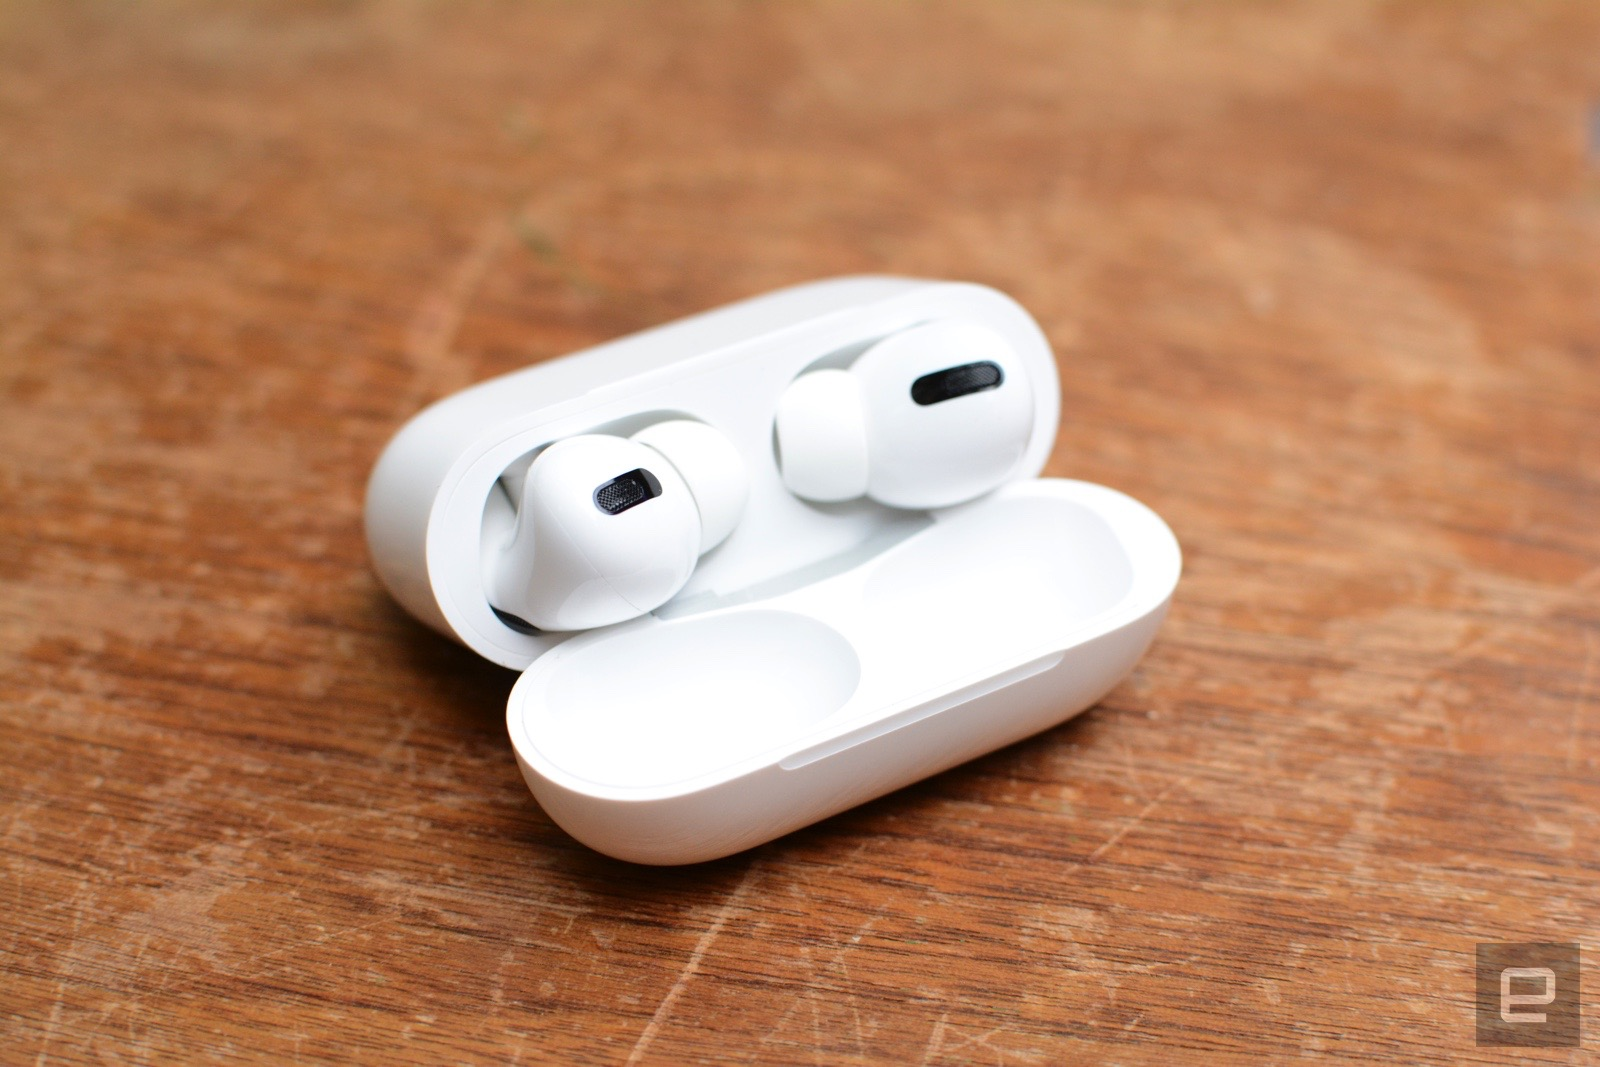 AirPods will link with an Apple ID in iOS 15 to enable Find My support